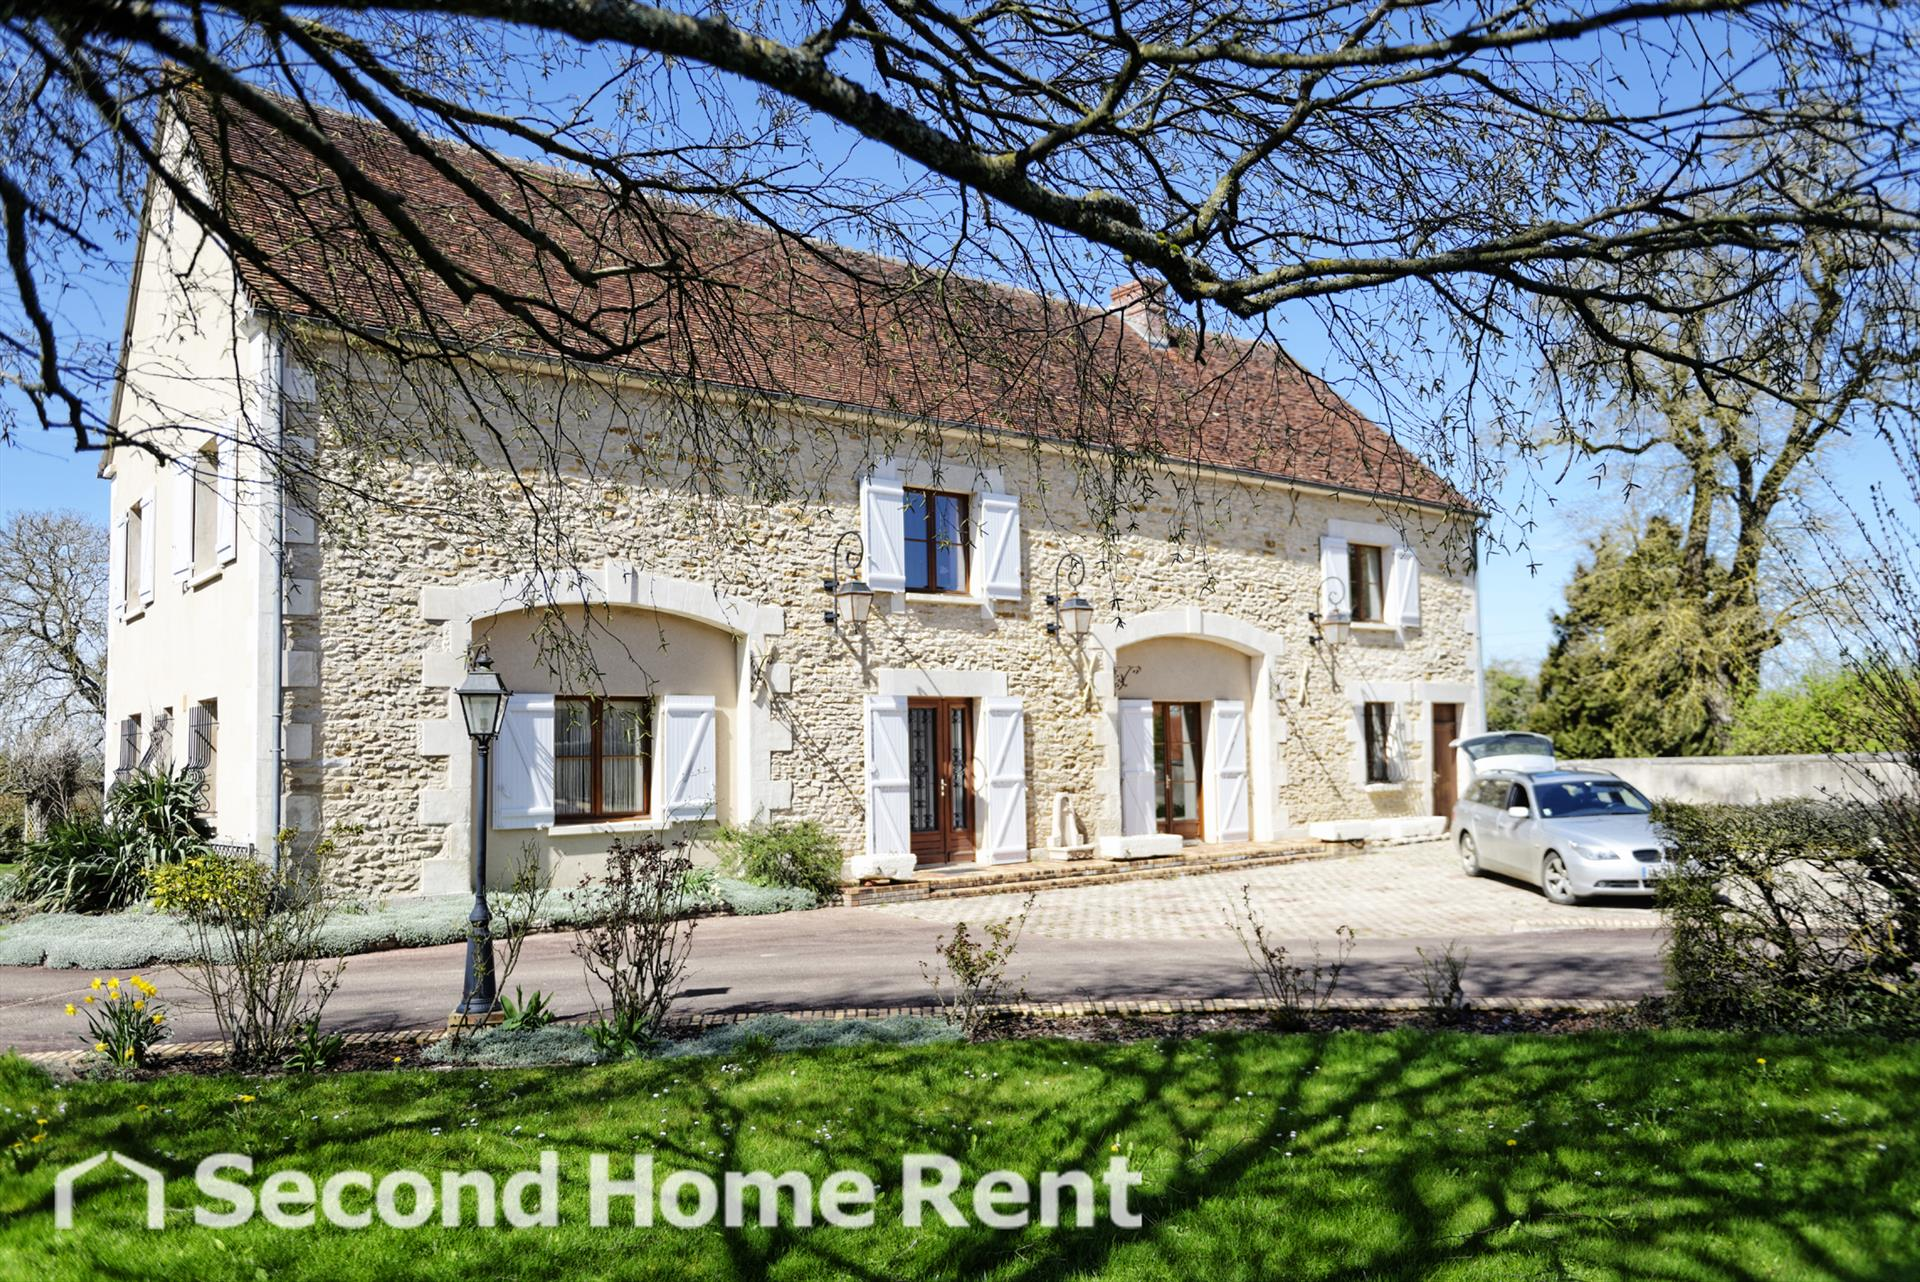 Bordes, Large and cheerful country house in Sainpuits, Burgundy, France with private pool for 13 persons. The country house is situated.....